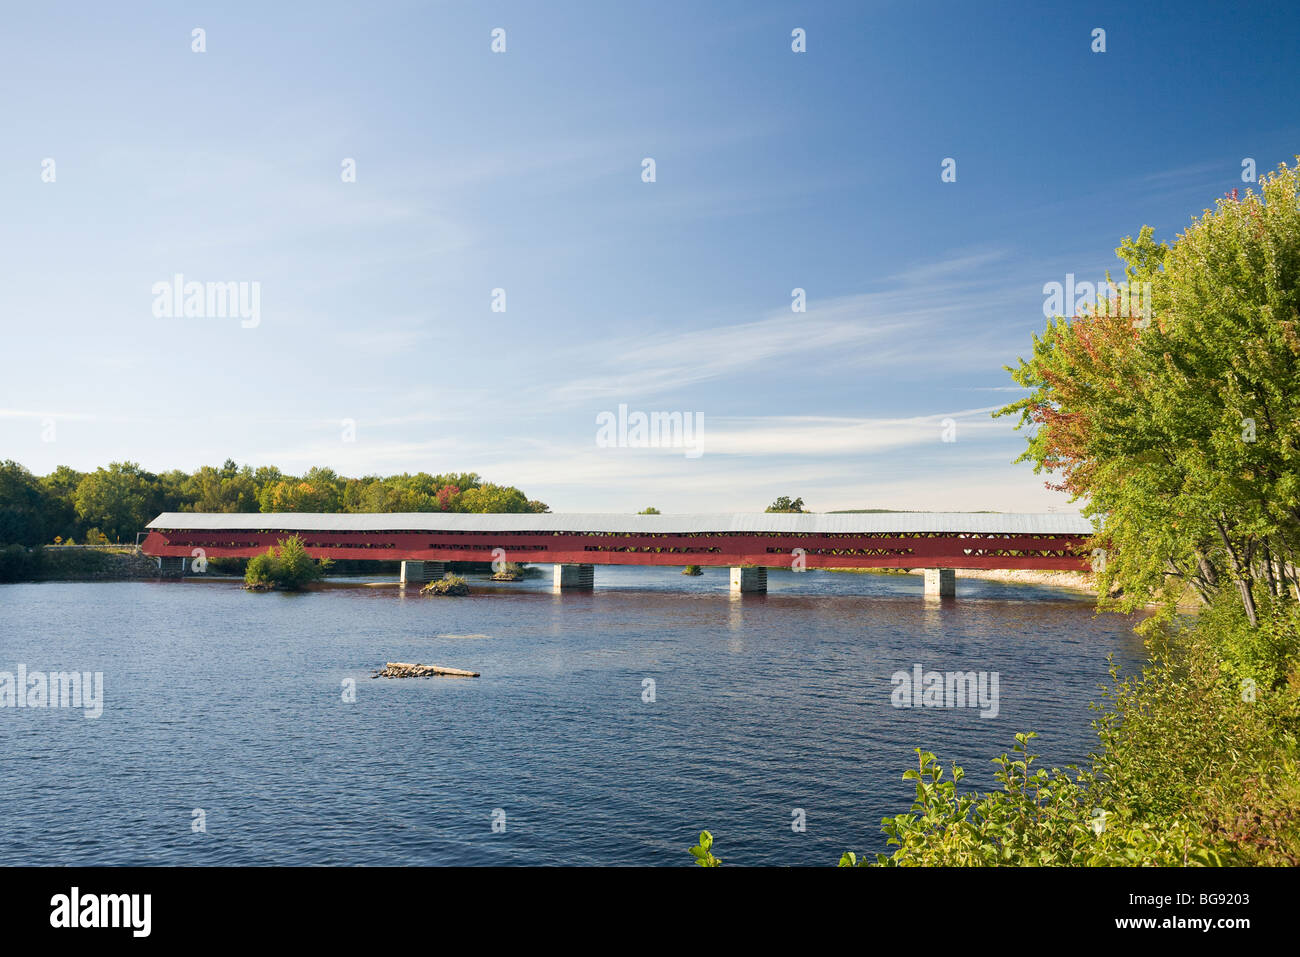 Marchand Stock Photos & Marchand Stock Images - Alamy